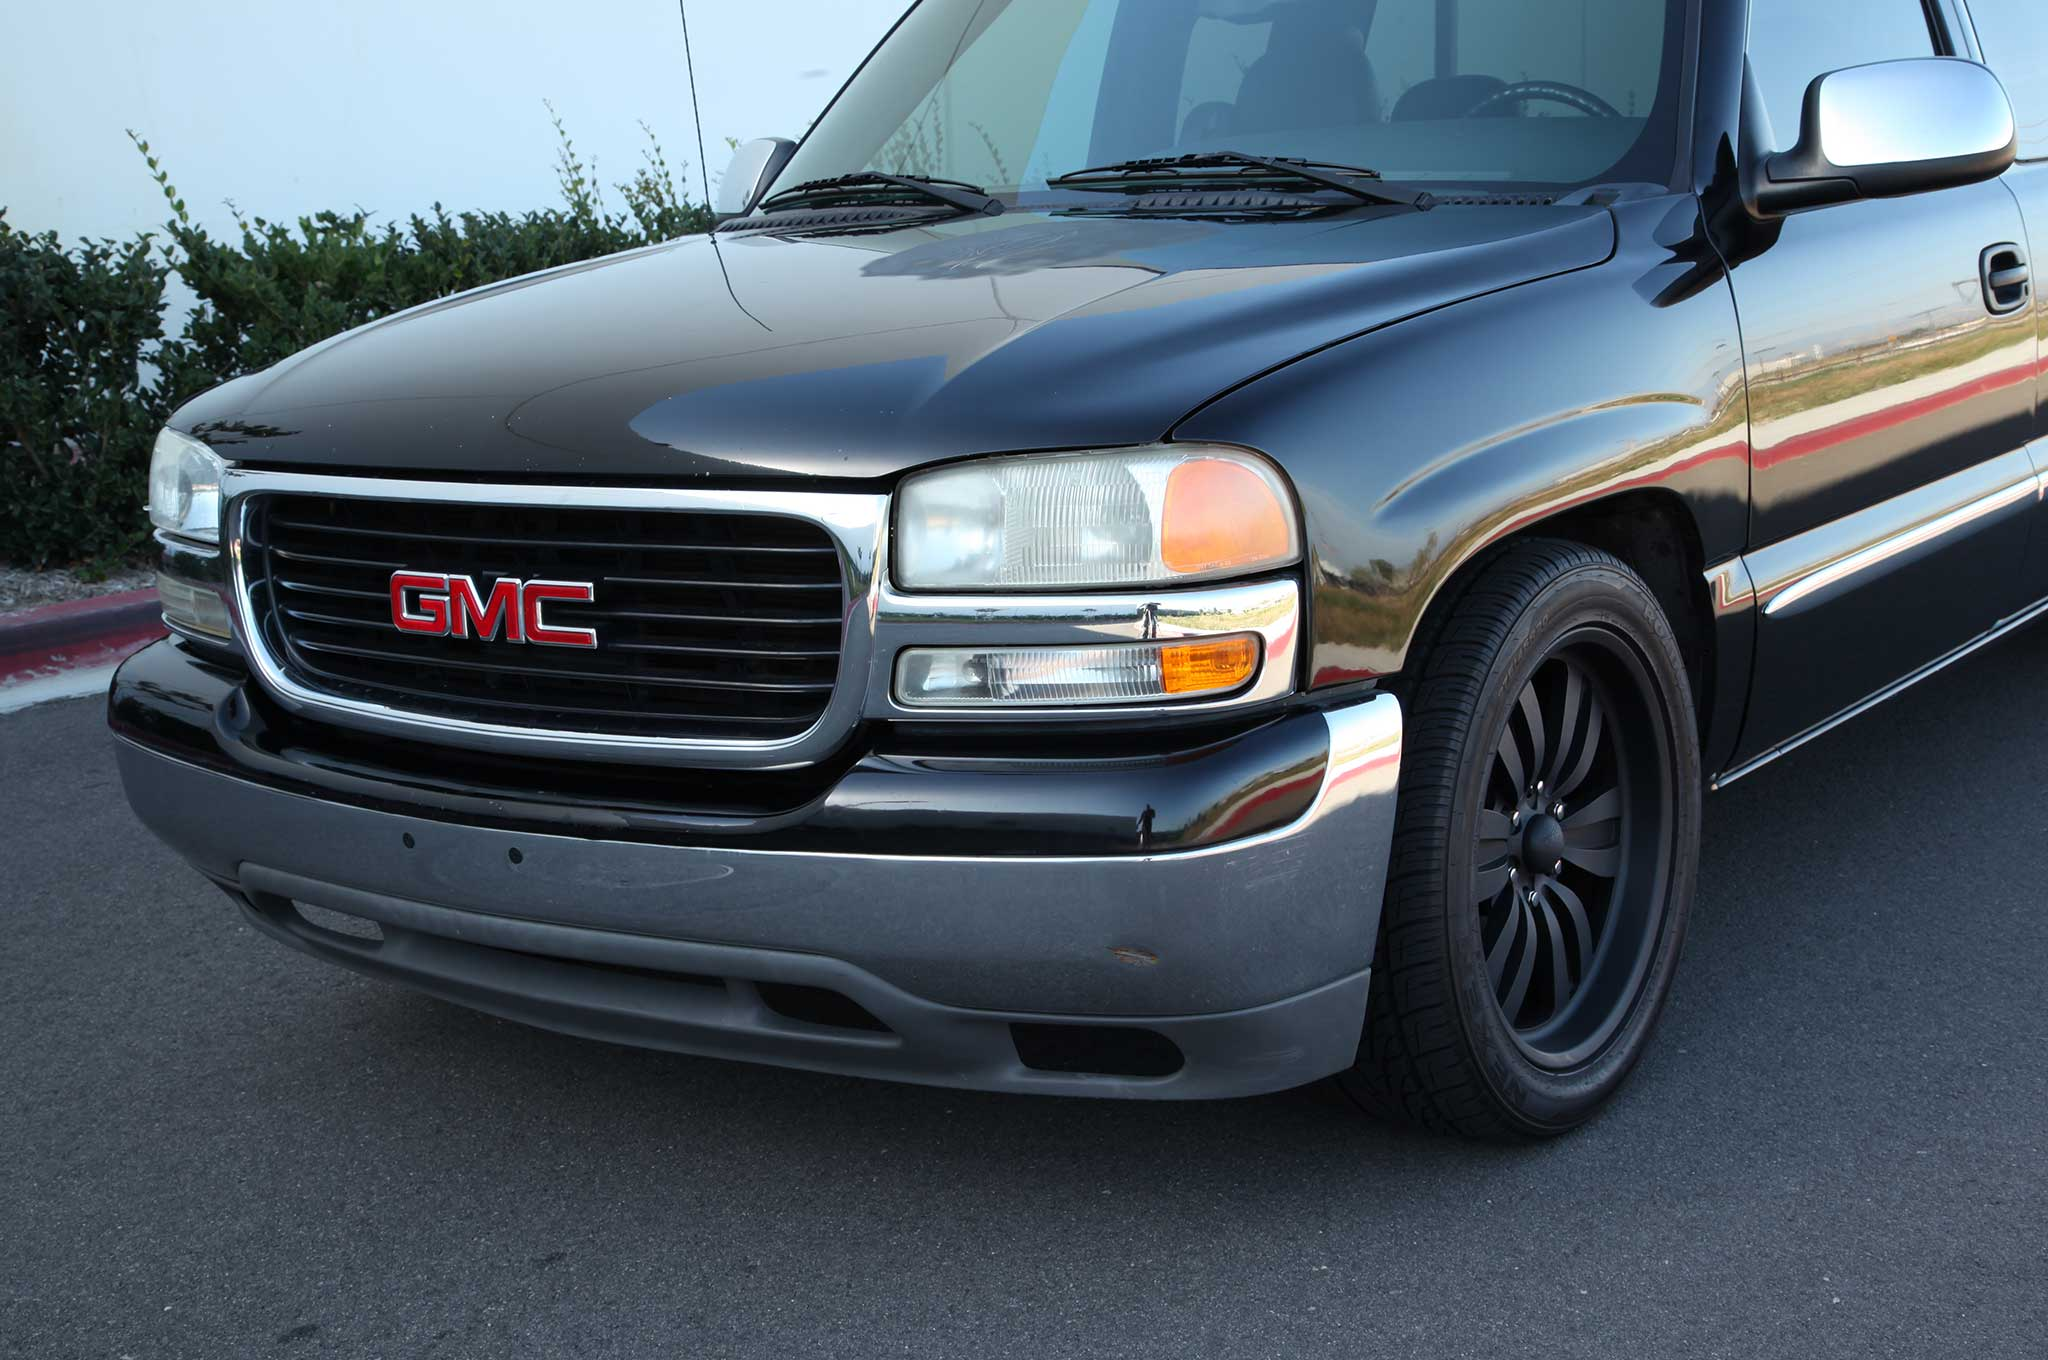 2002 Gmc Sierra Front End Update With Lmc Truck And Grillcraft